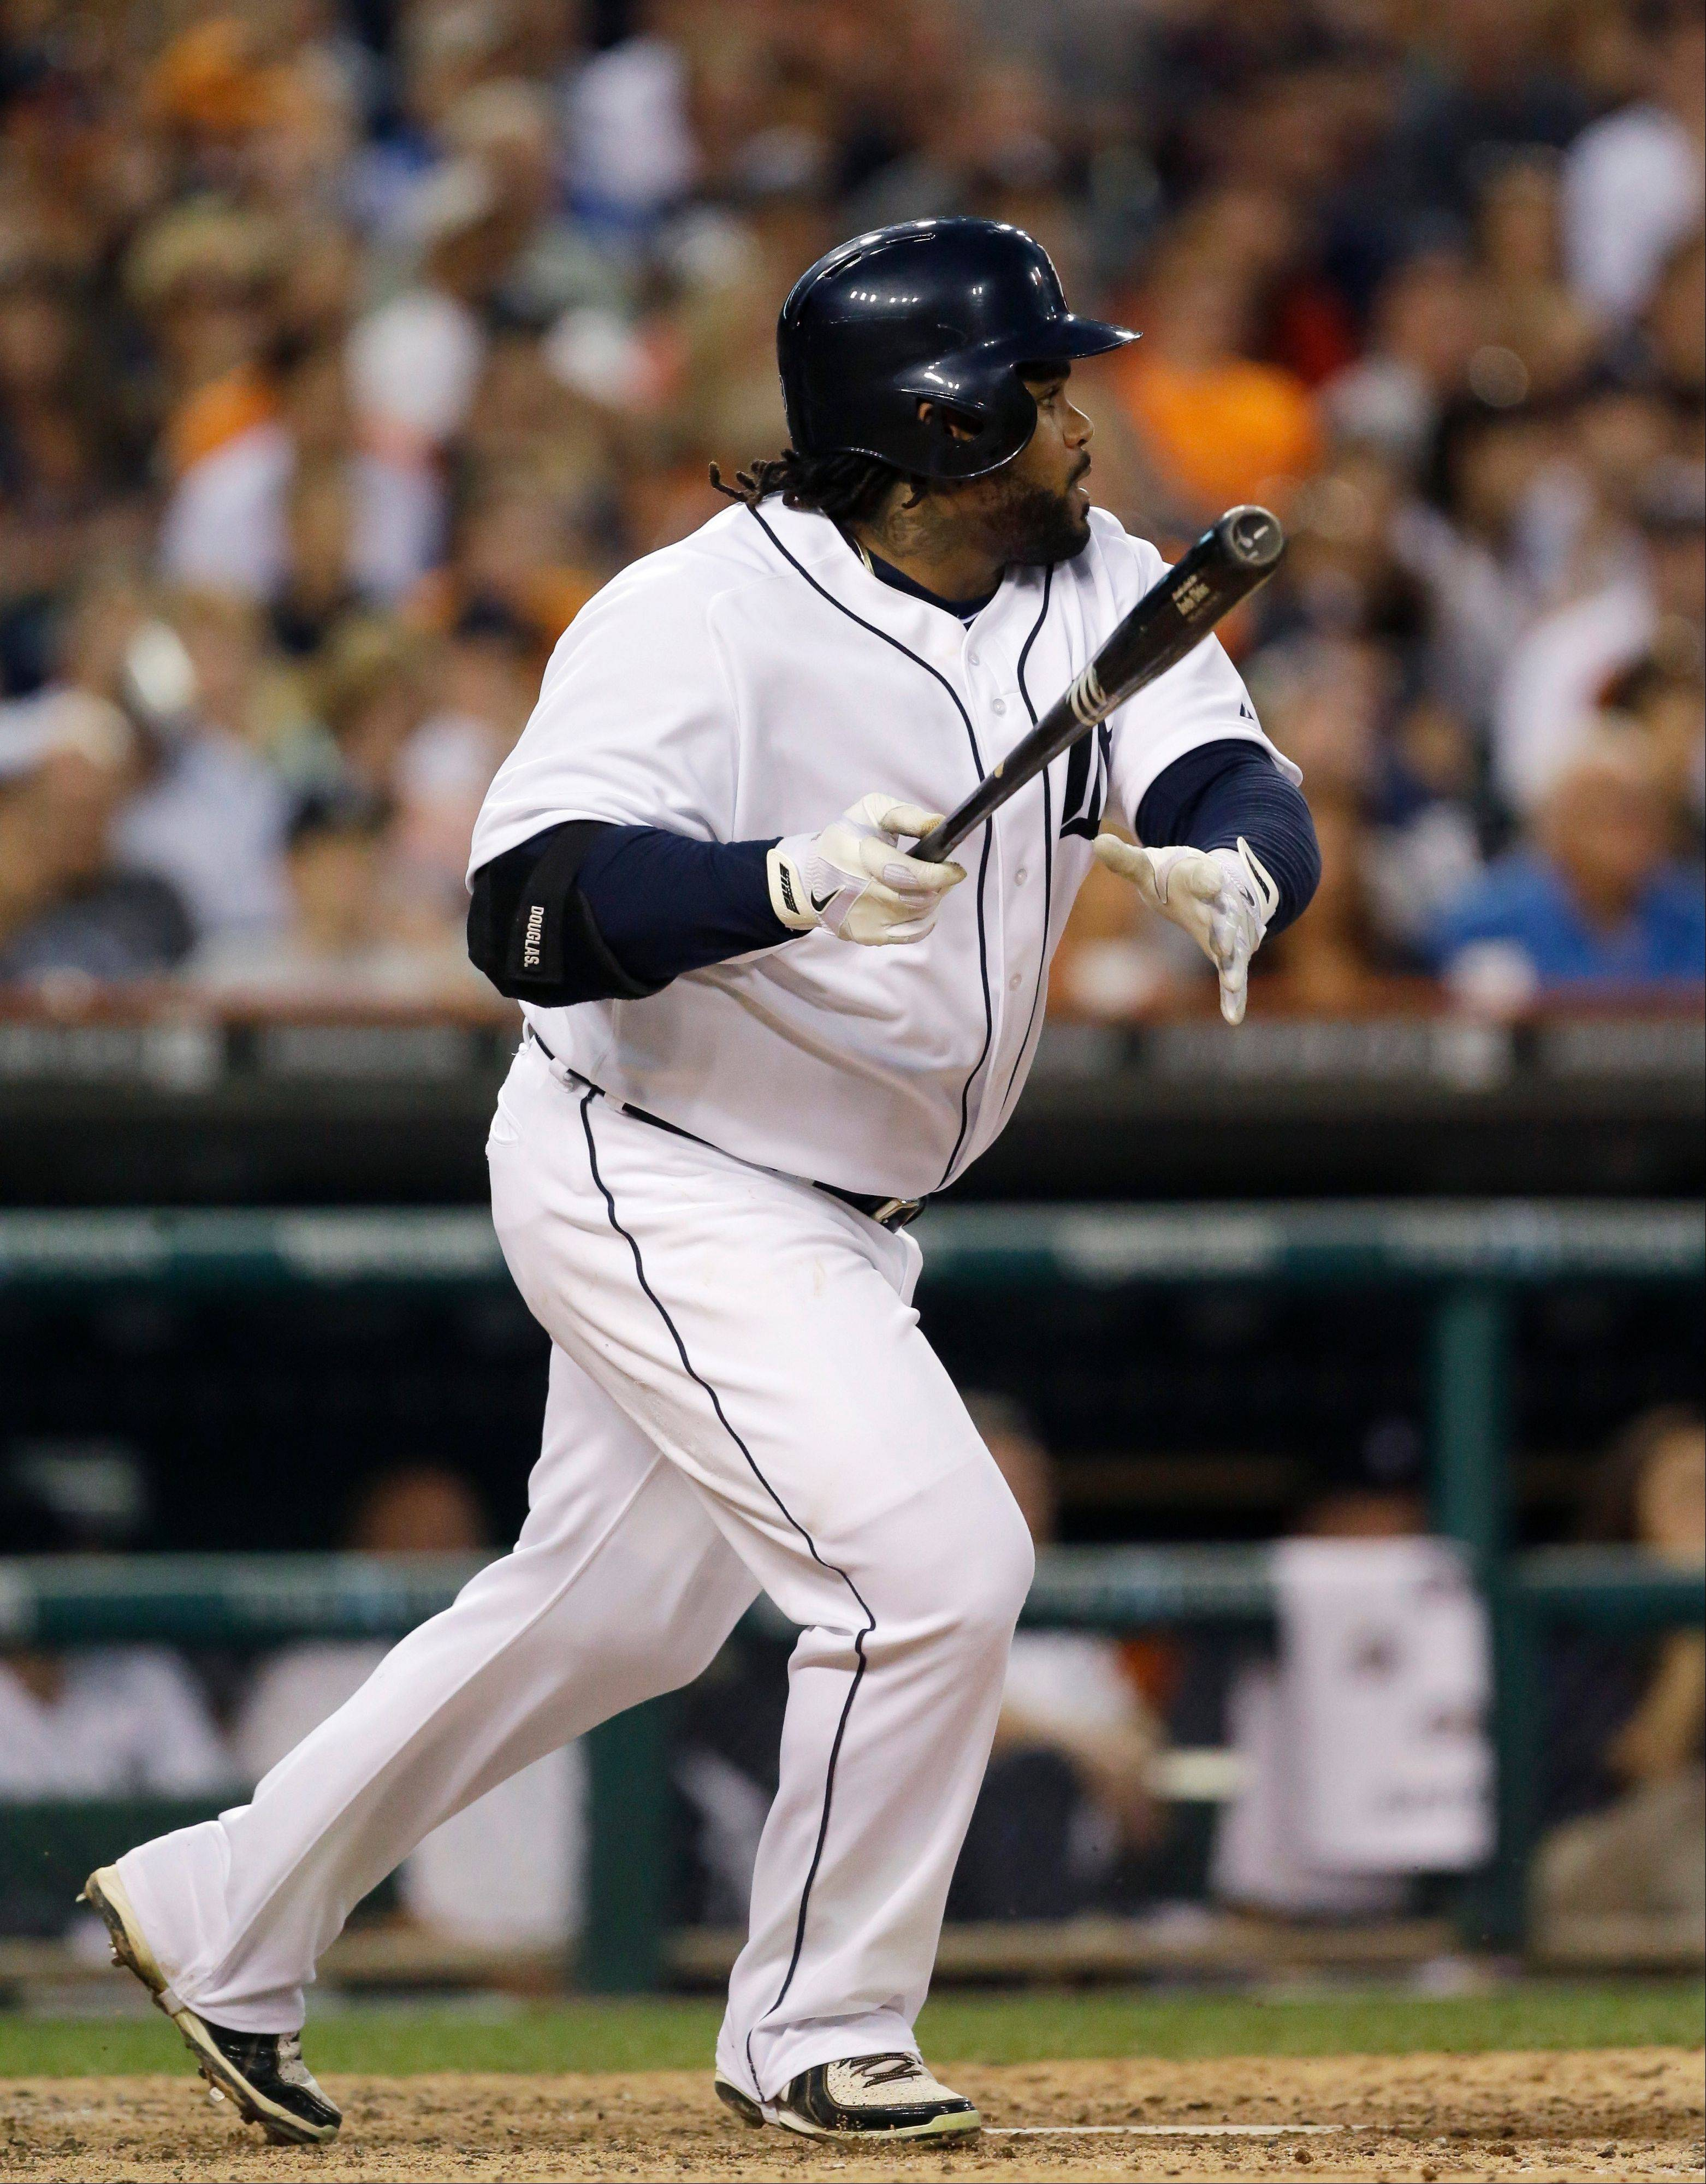 Prince Fielder singles to left field and drives in Torii Hunter from second during sixth inning of a baseball game against the Chicago White Sox in Detroit, Wednesday, July 10, 2013.